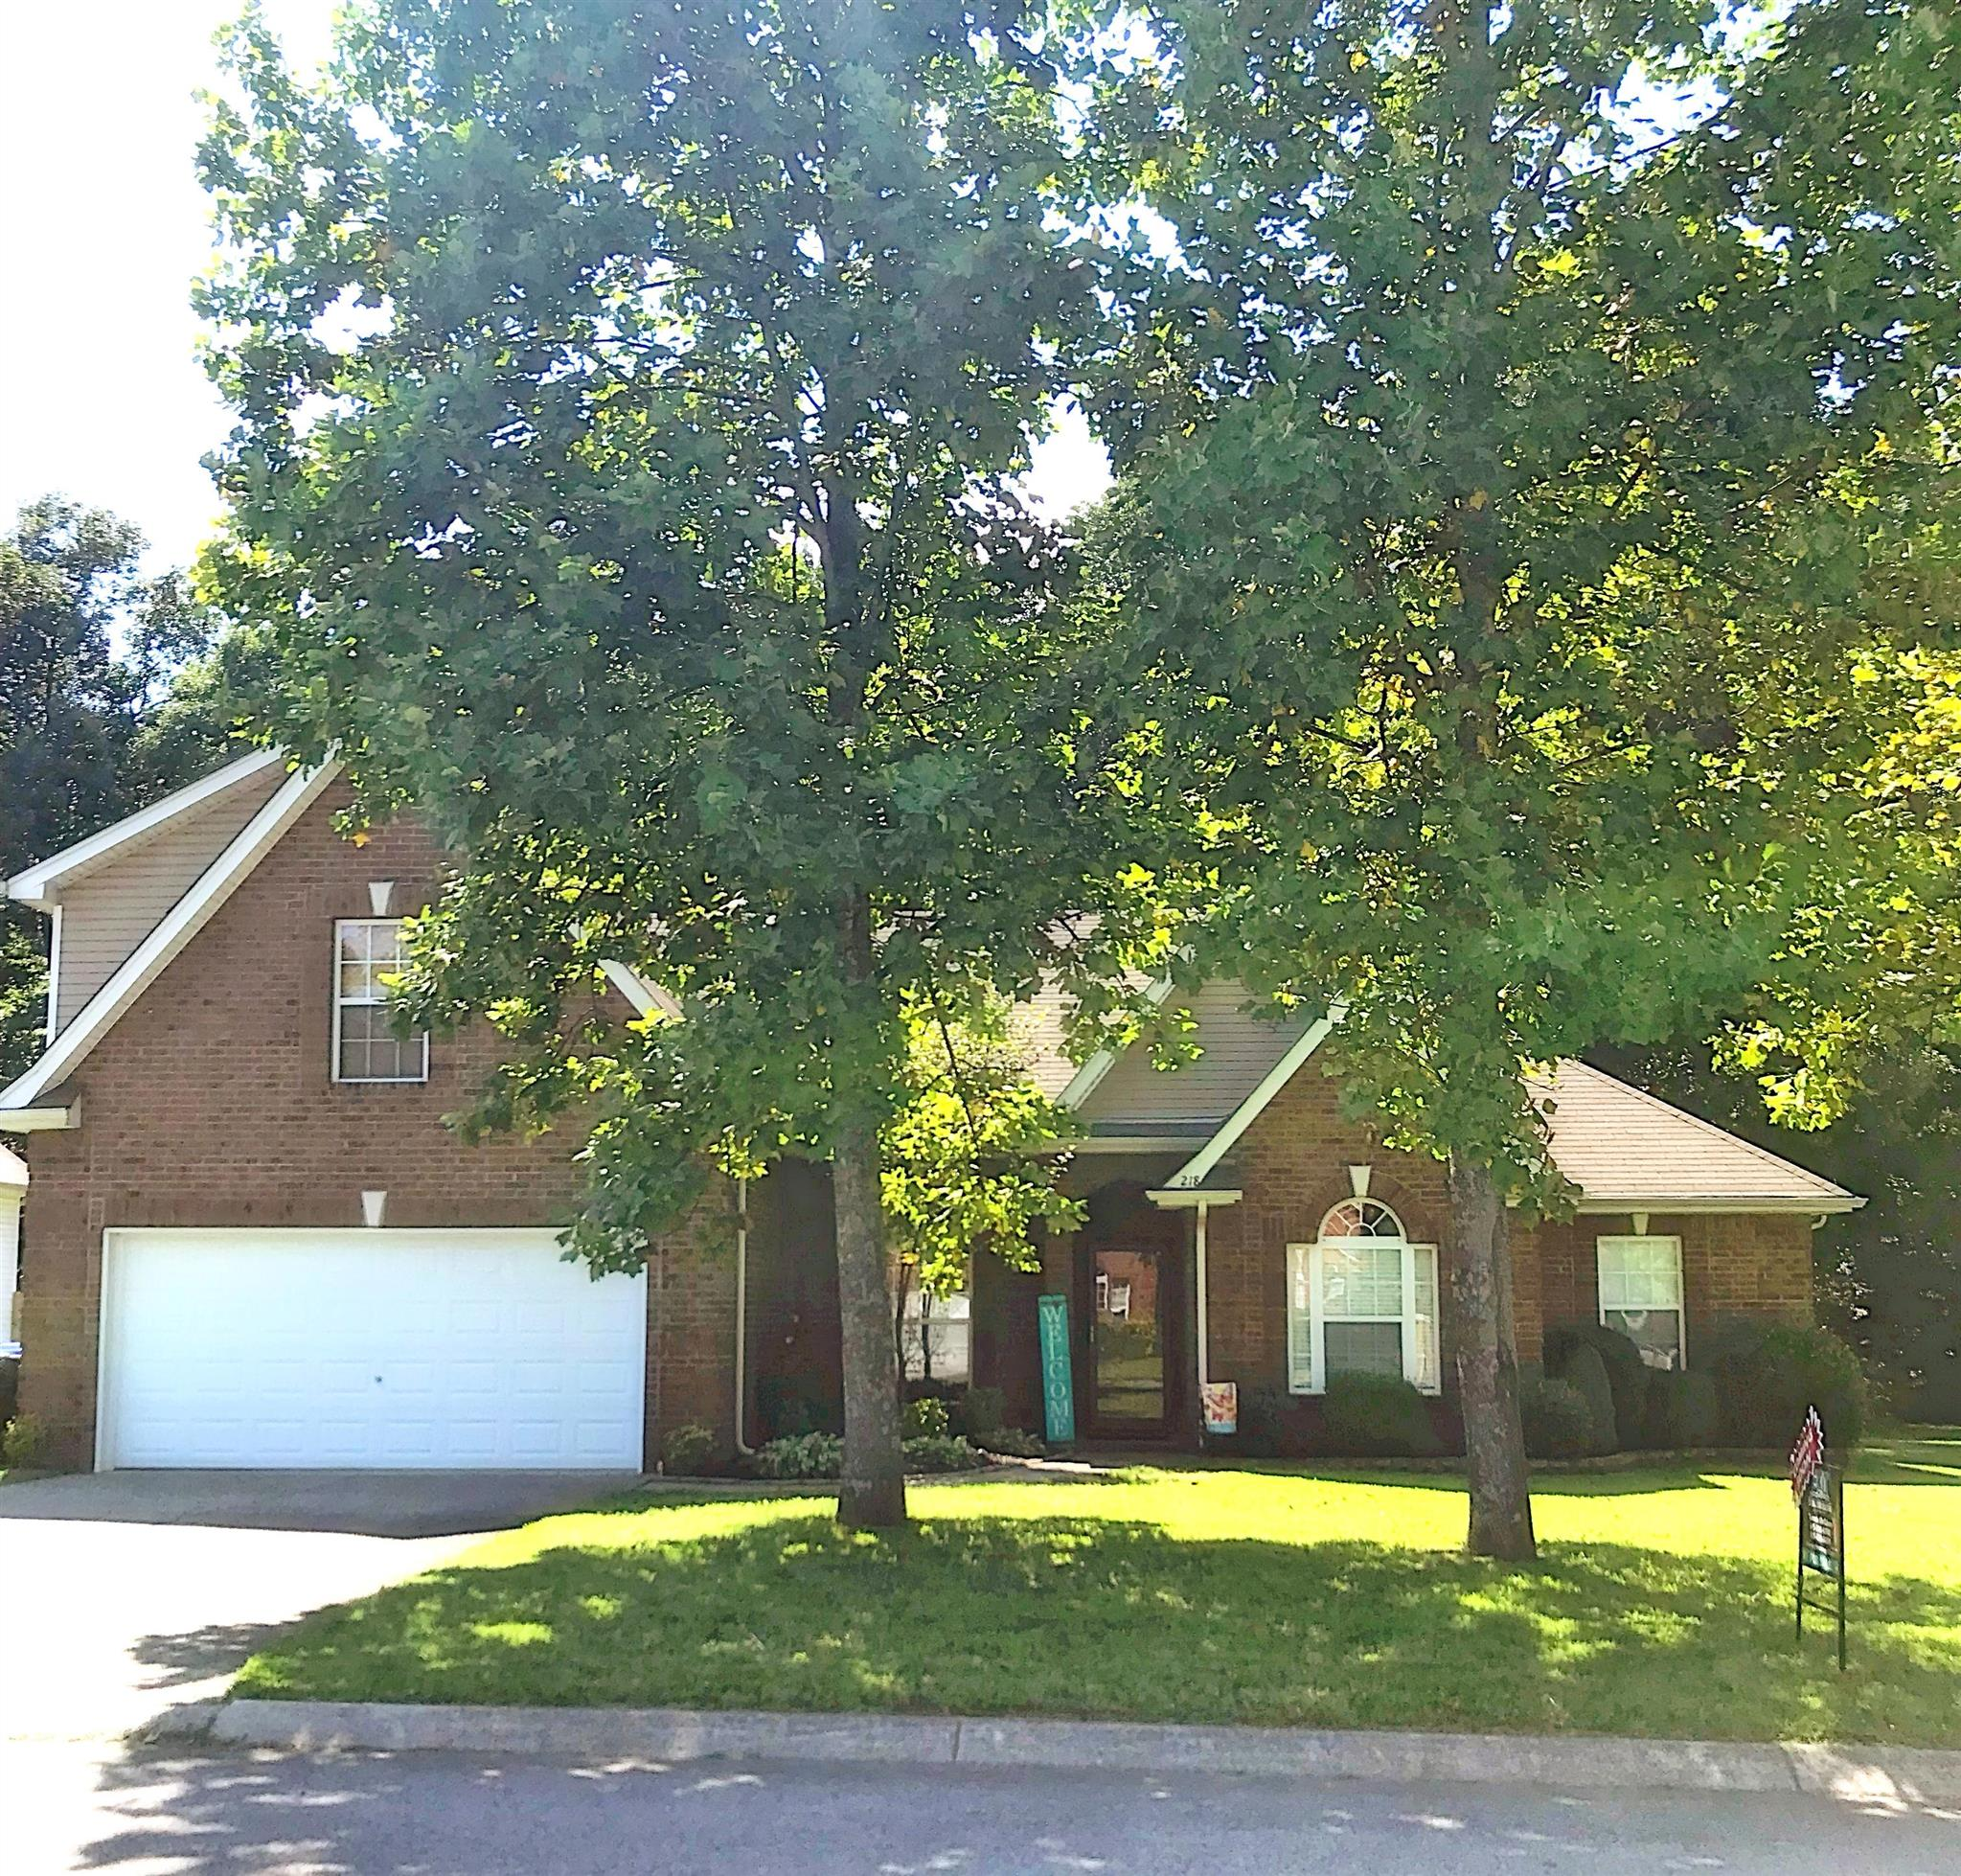 Beautiful Home in Quiet Neighborhood, 218 Foster Dr White House TN Home For Sale